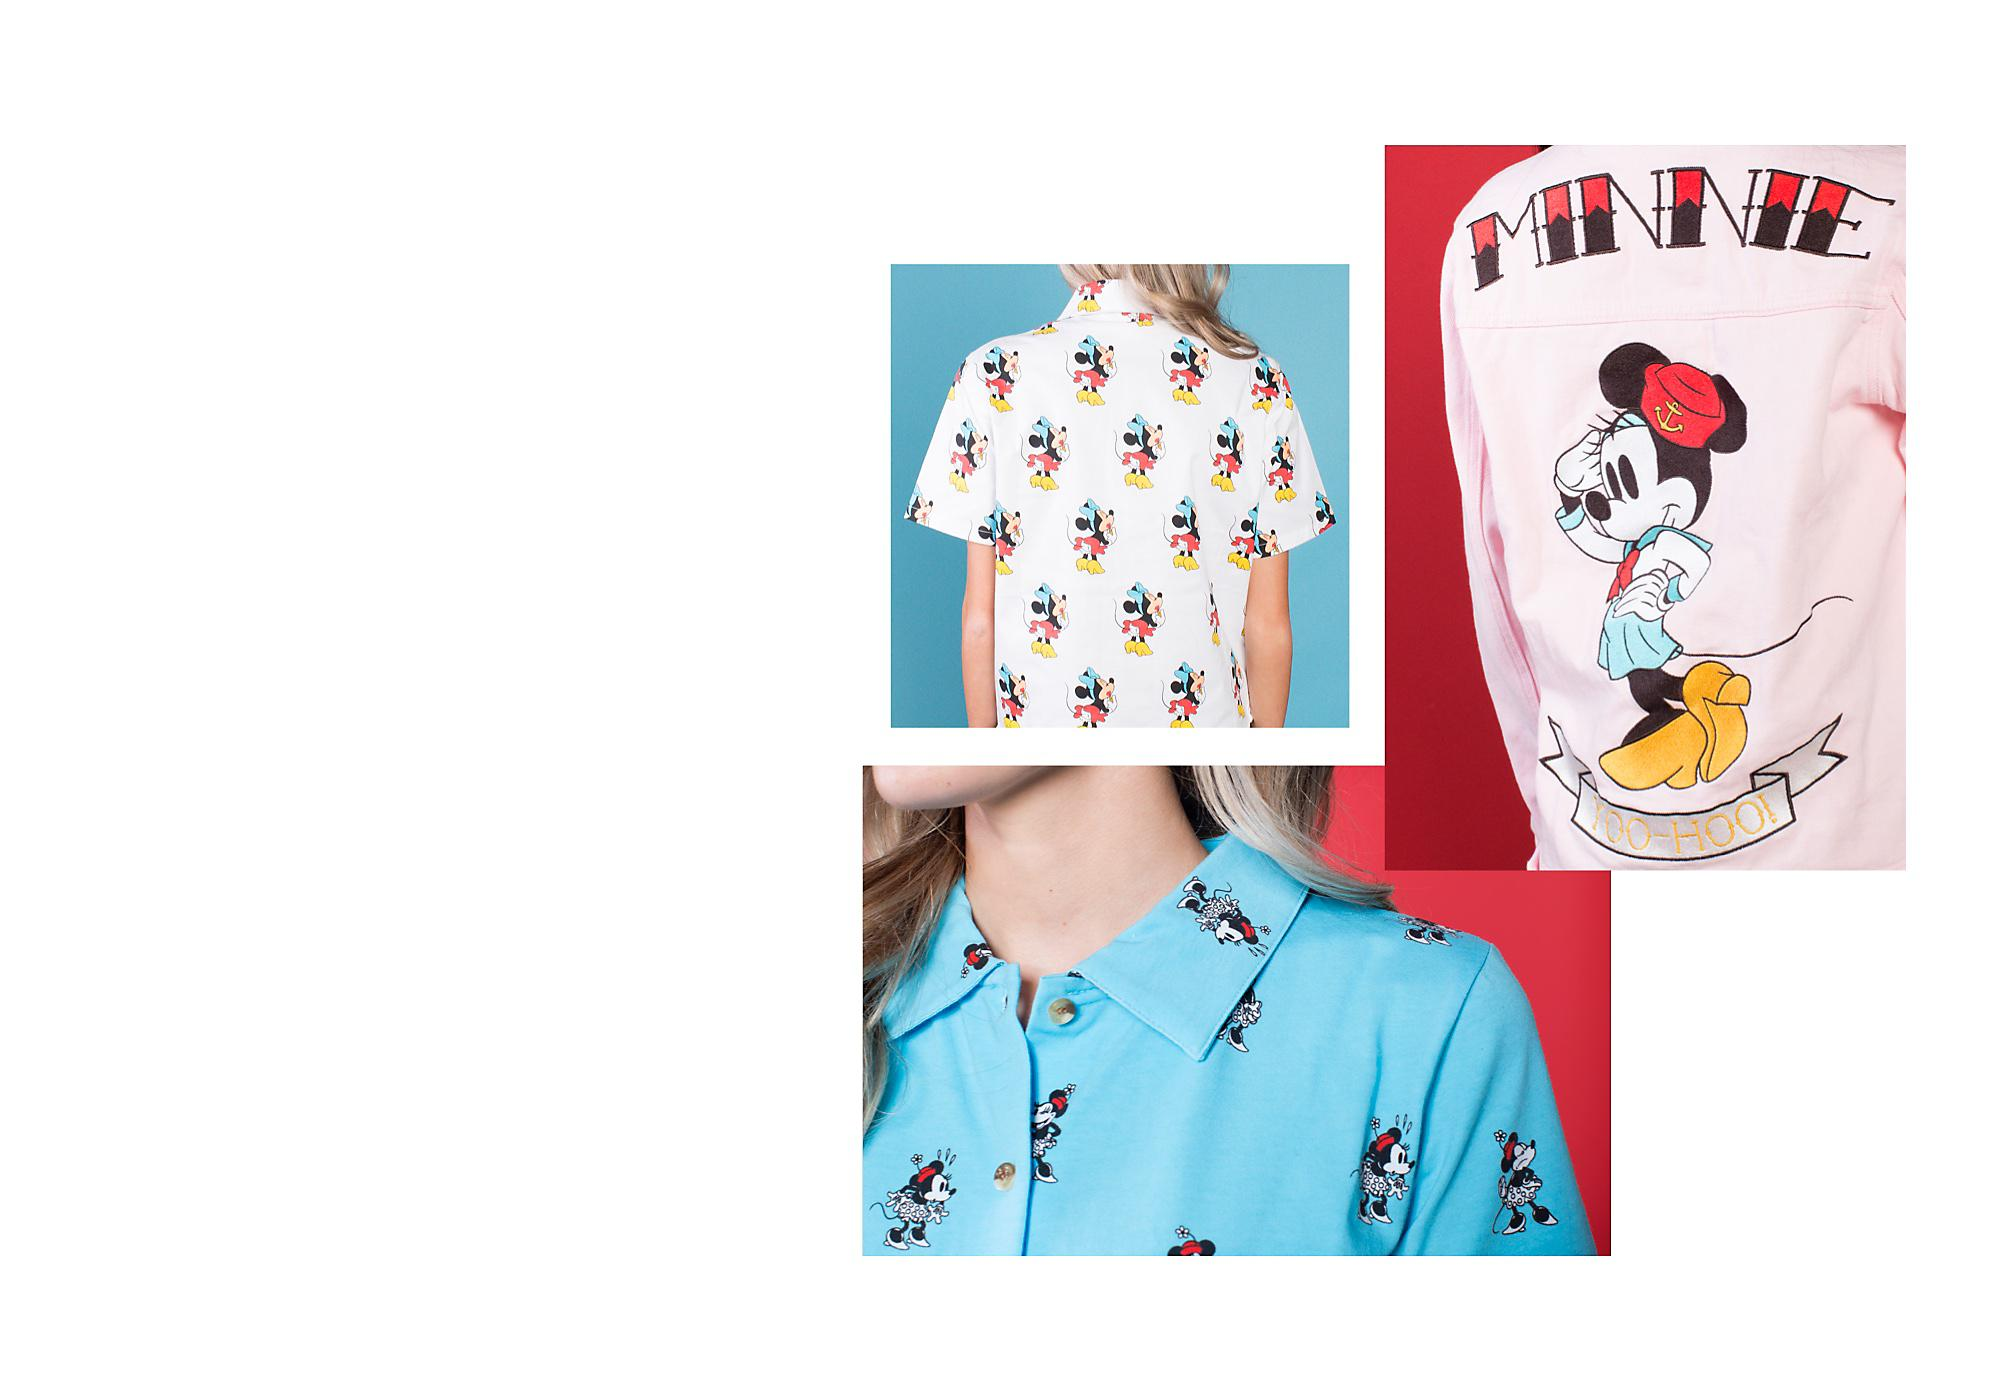 Rock the Latest Disney Style These clothes and accessories from Cakeworthy let you channel your inner character whenever you're feeling inspired